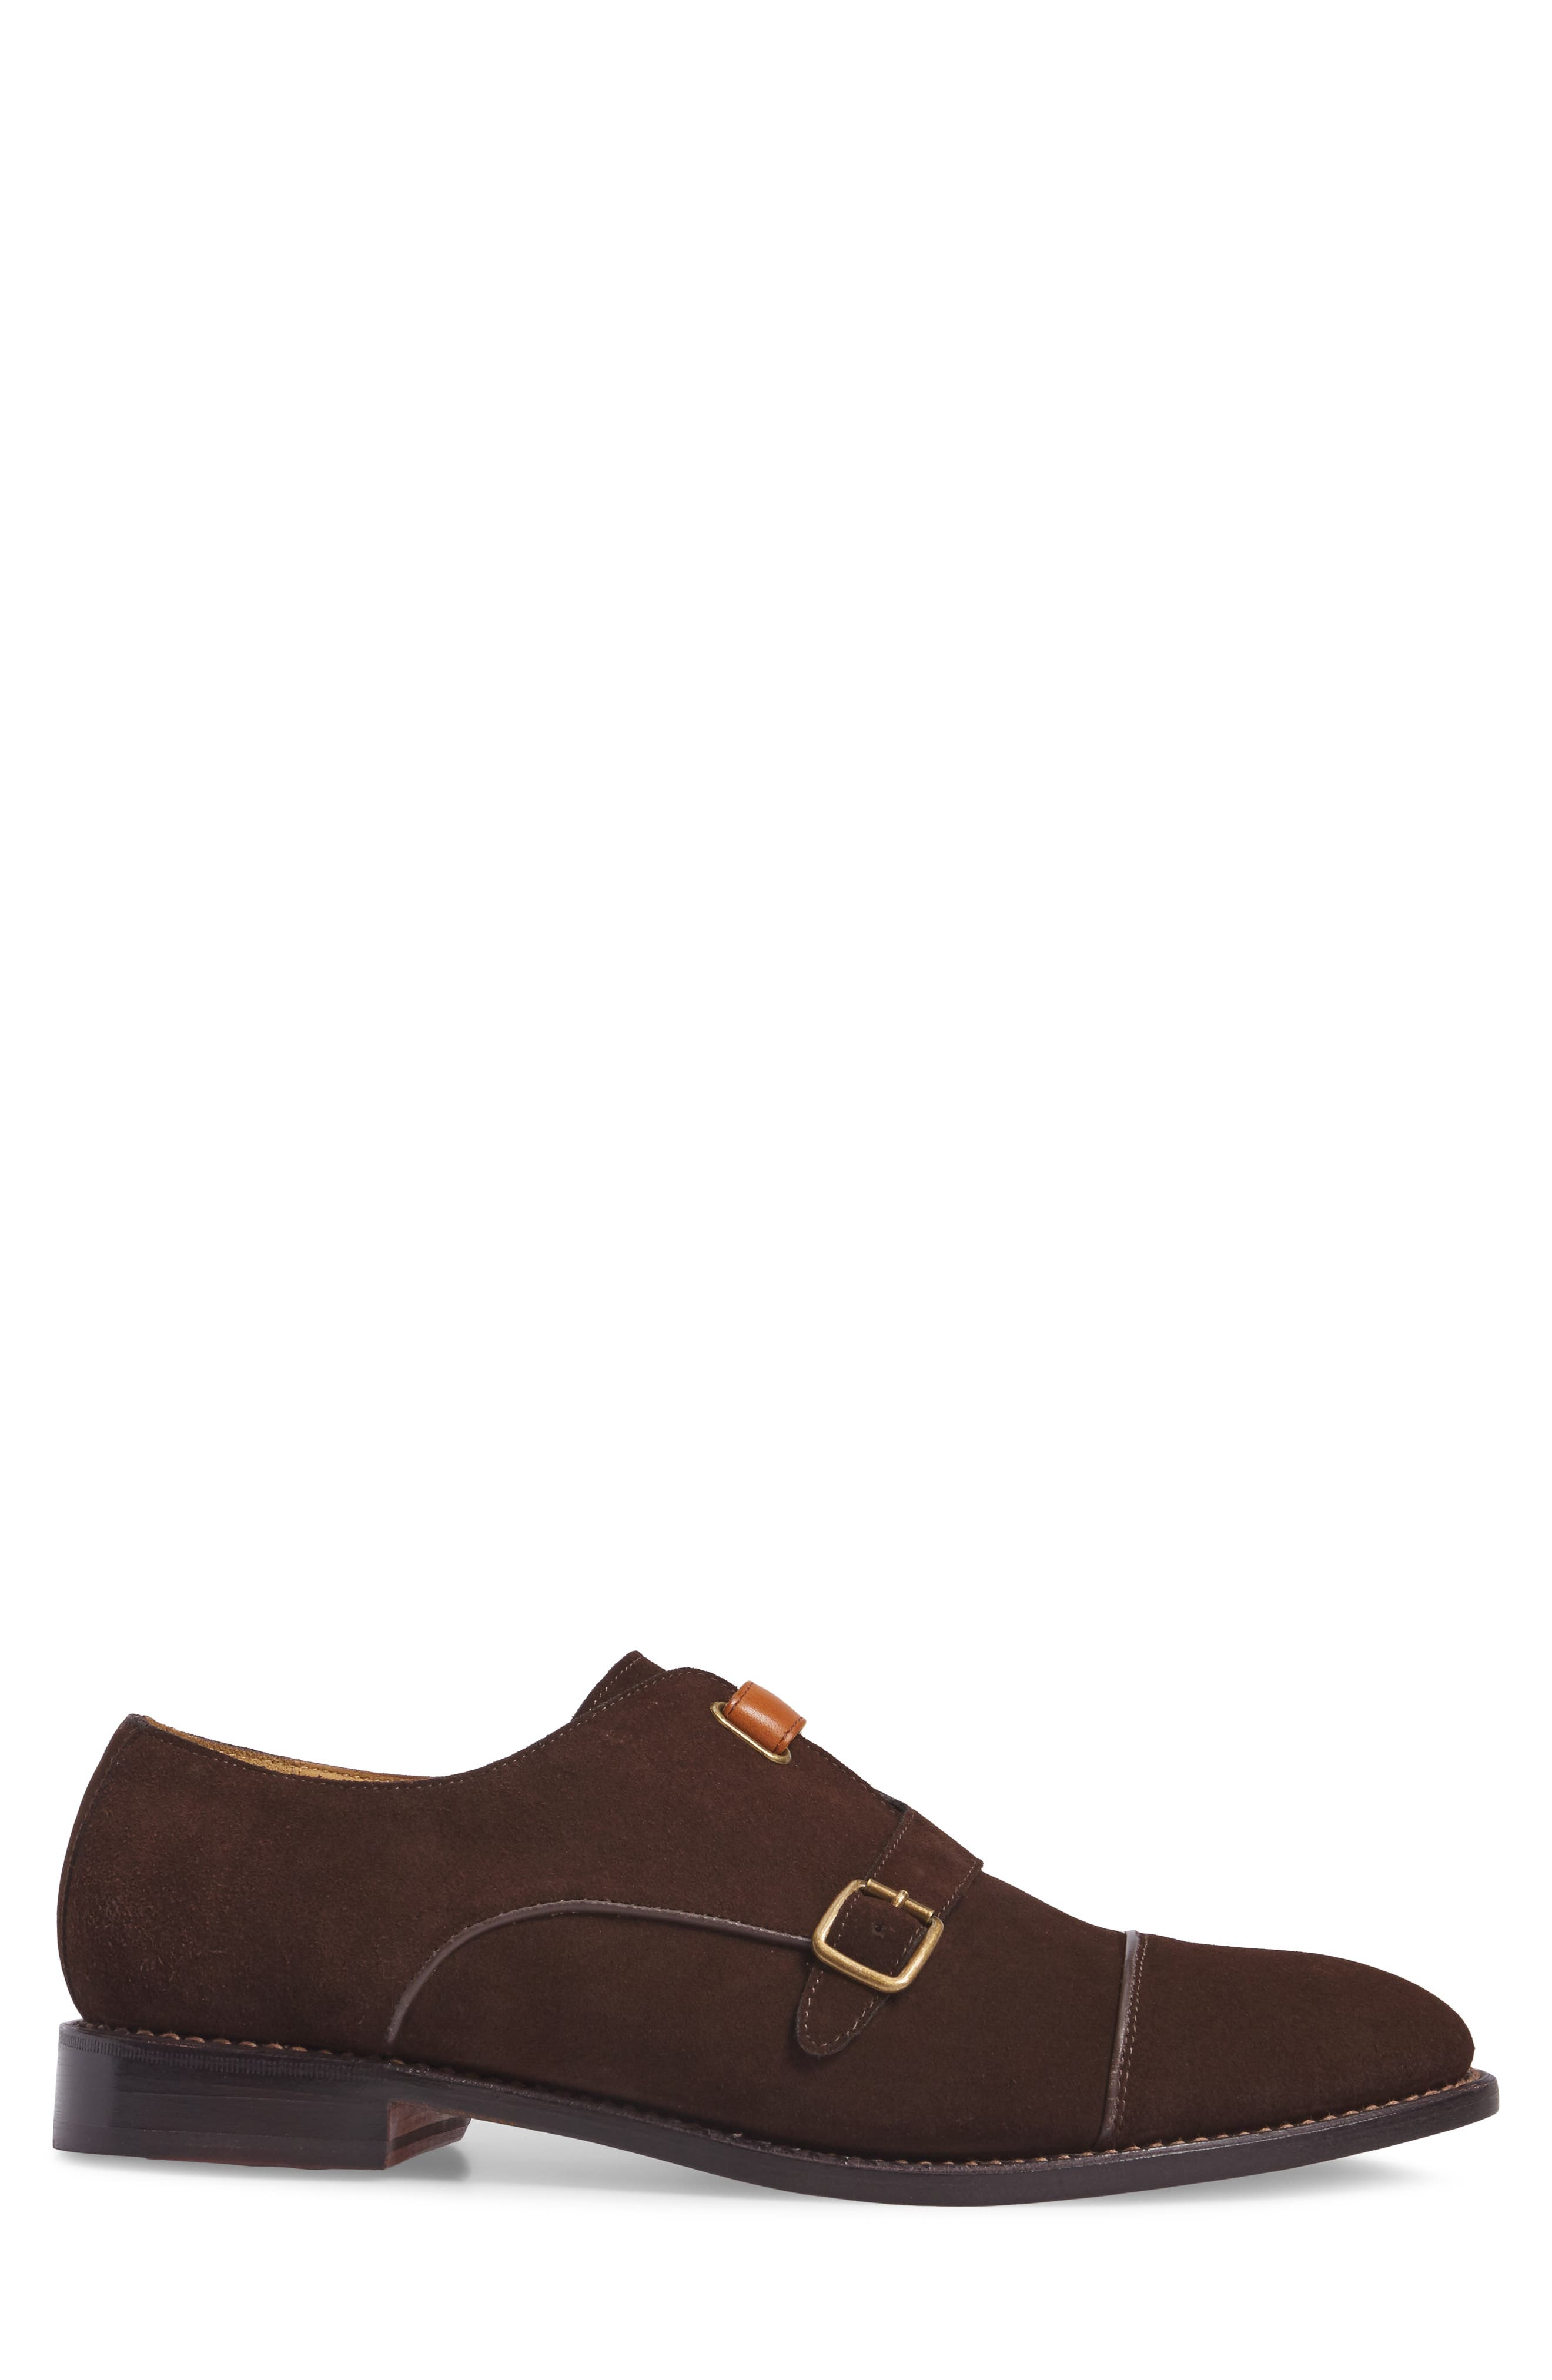 Alternate Image 3  - Michael Bastian Brando Cap Toe Monk Shoe (Men)